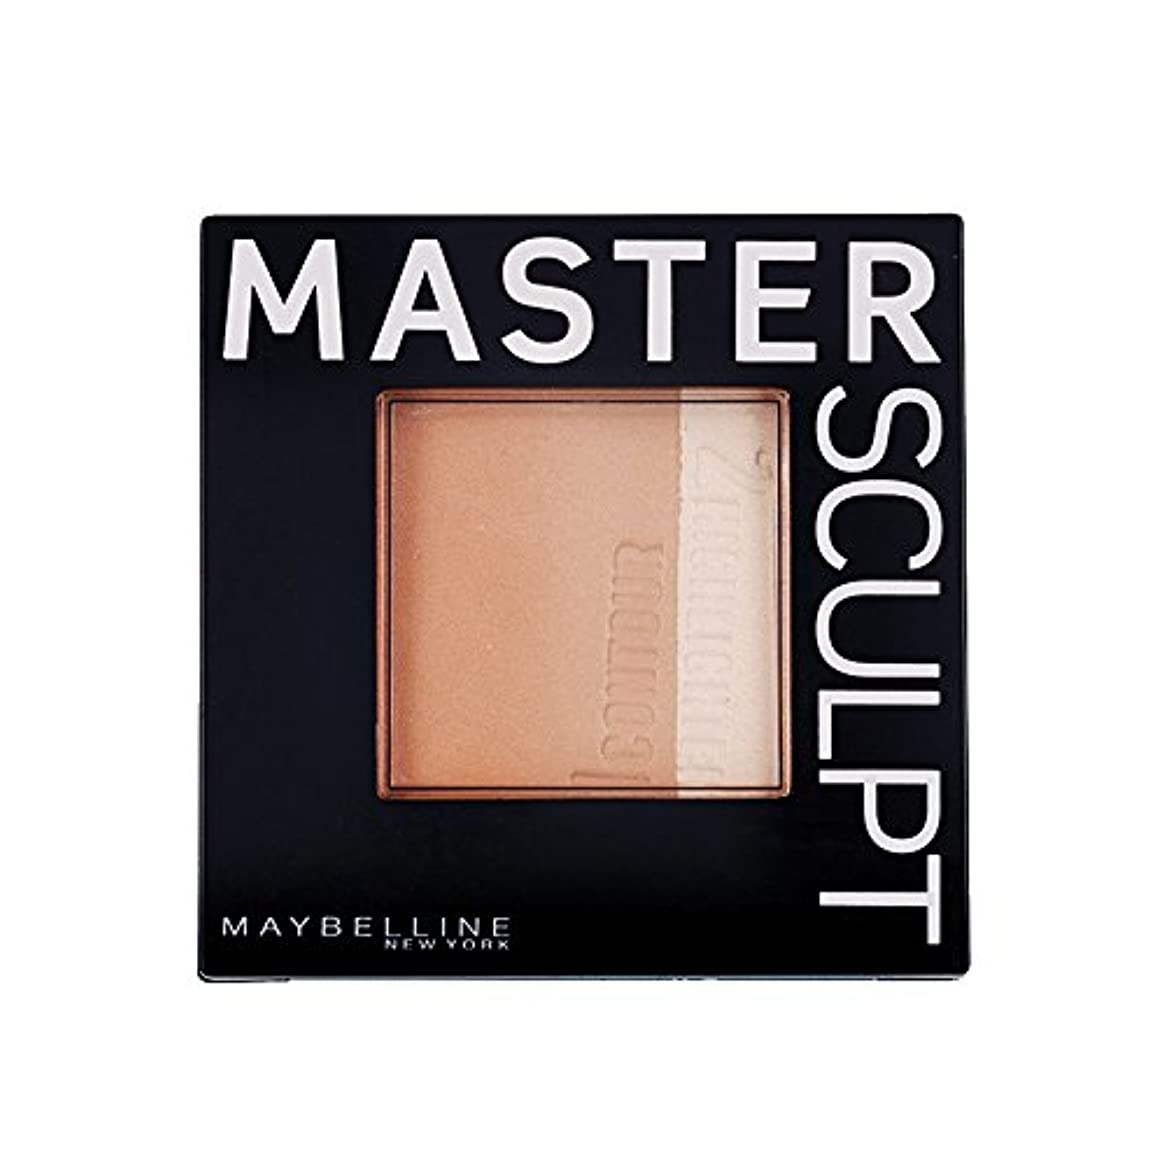 パラメータ電報手当Maybelline Master Sculpt Countouring Palette Light Medium 01